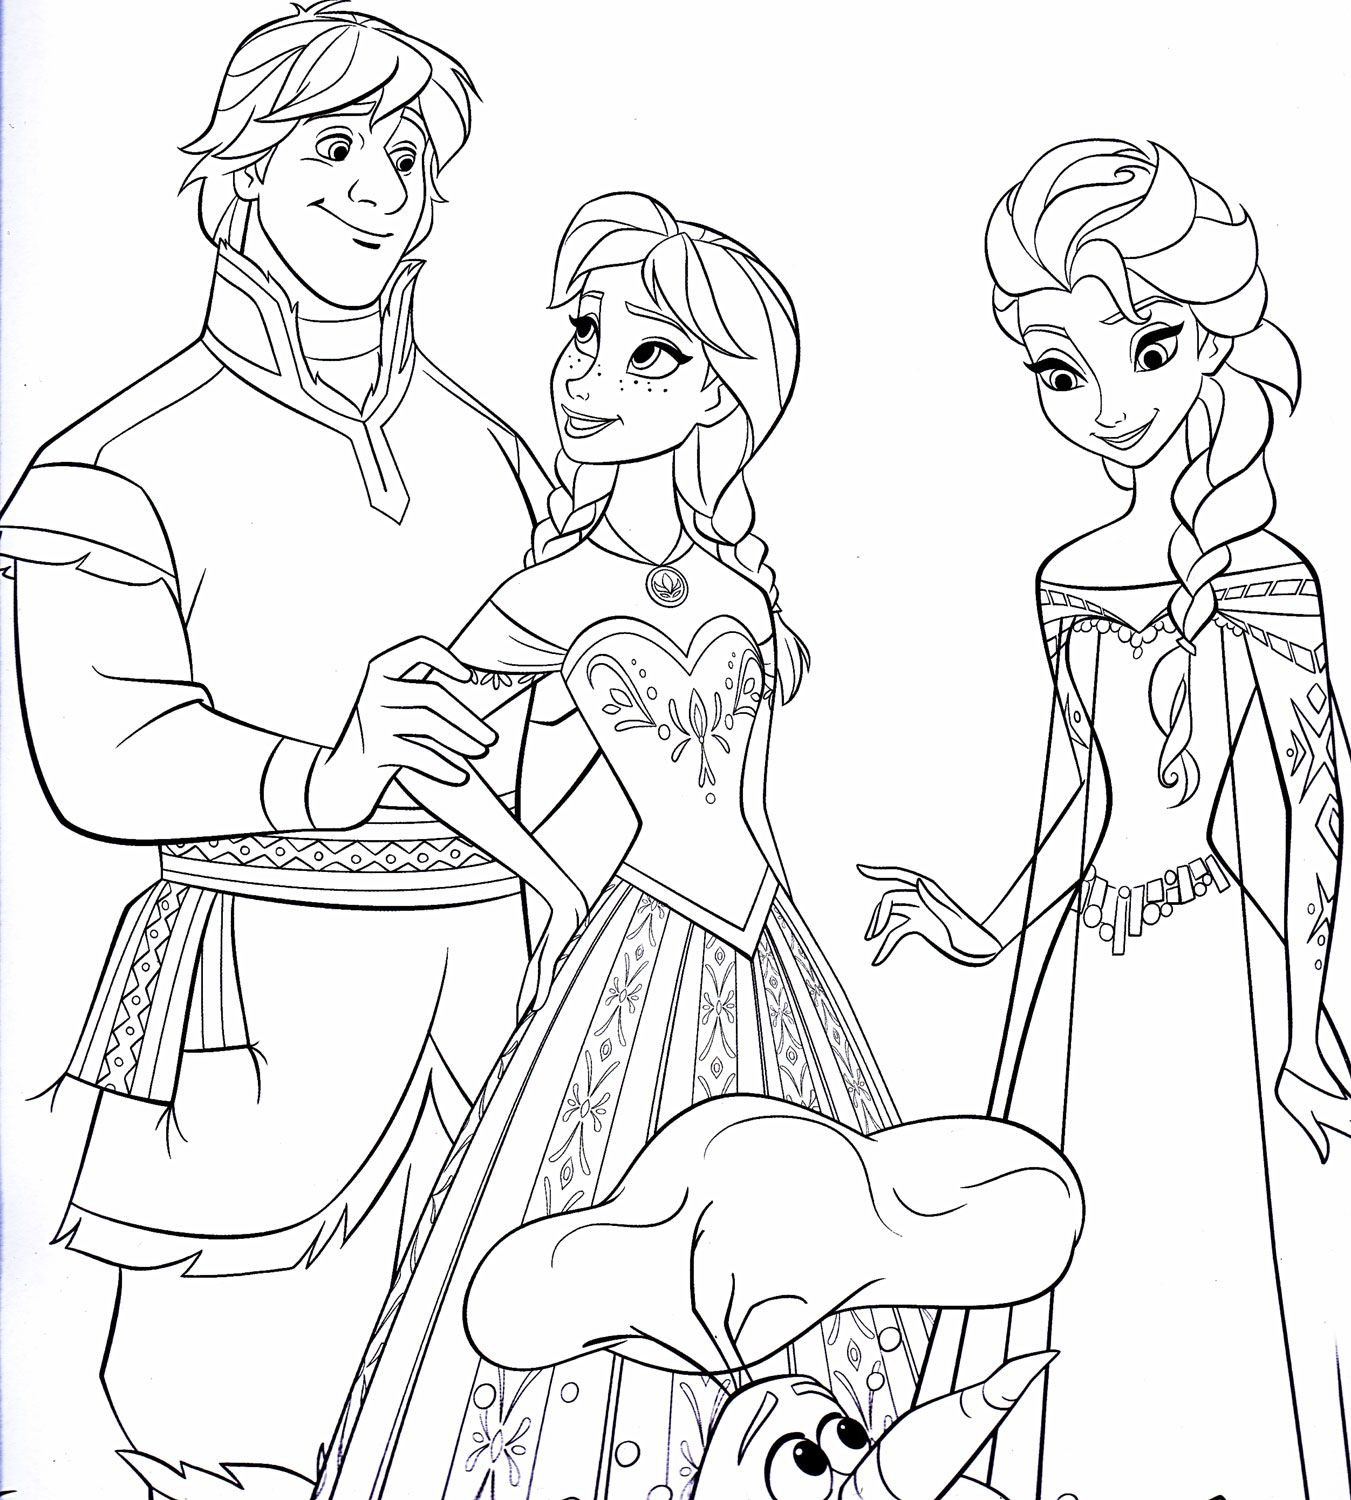 Disney Frozen Coloring Pages Elsa At Getdrawings Free Download